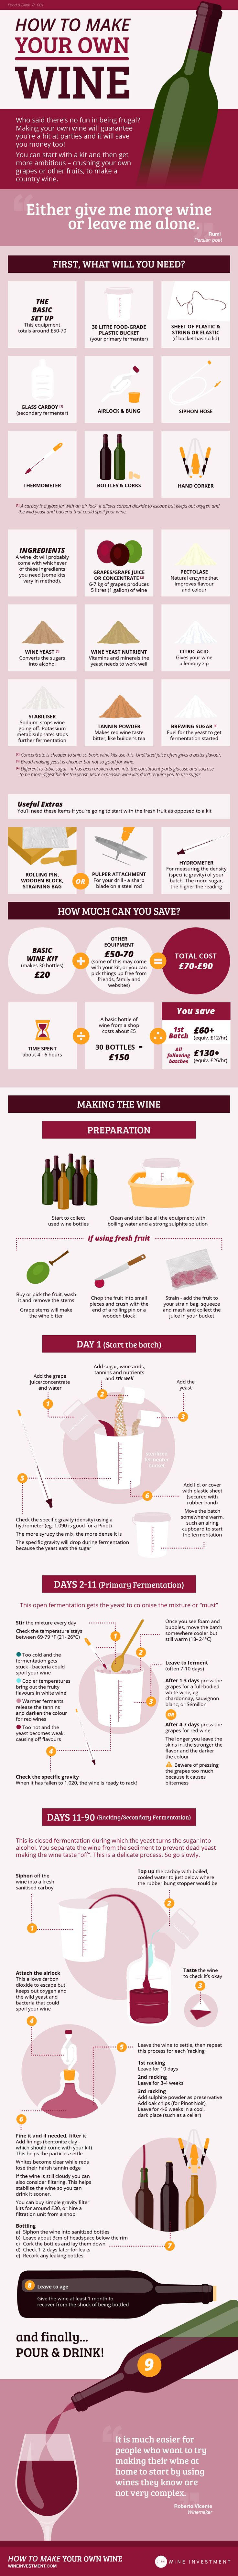 How to Make Your Own Wine #infographic